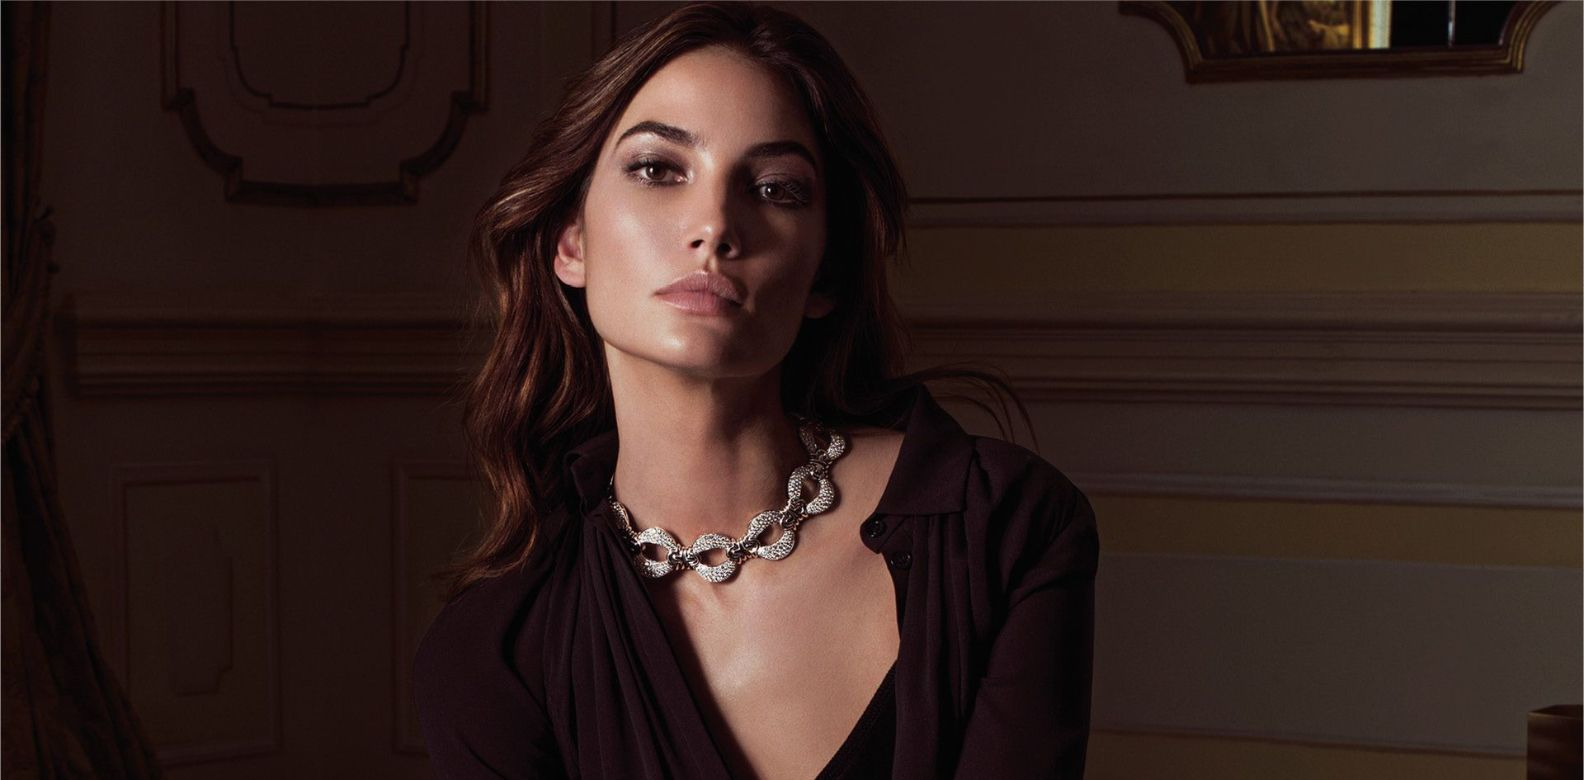 Lily Aldridge wearing the Parentesi Hamata necklace by Bulgari